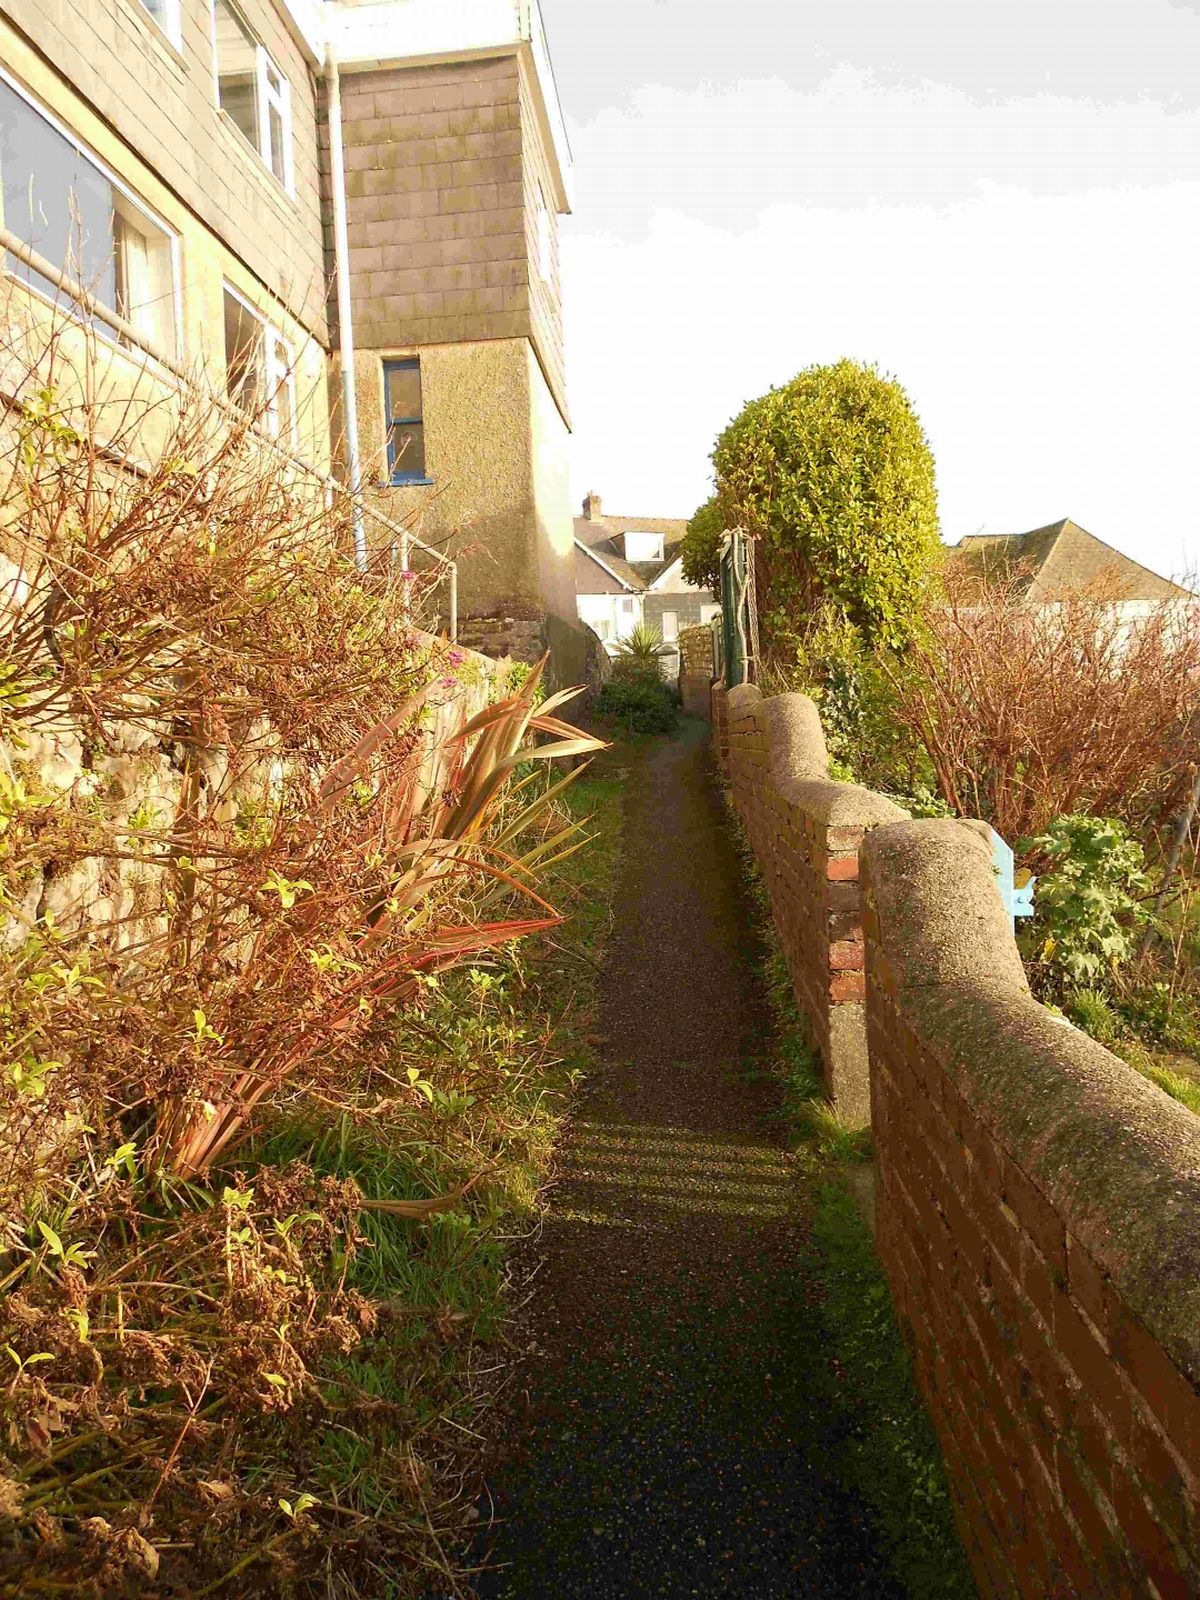 CONTROVERSY: Teneriffe Path in Lyme Regis